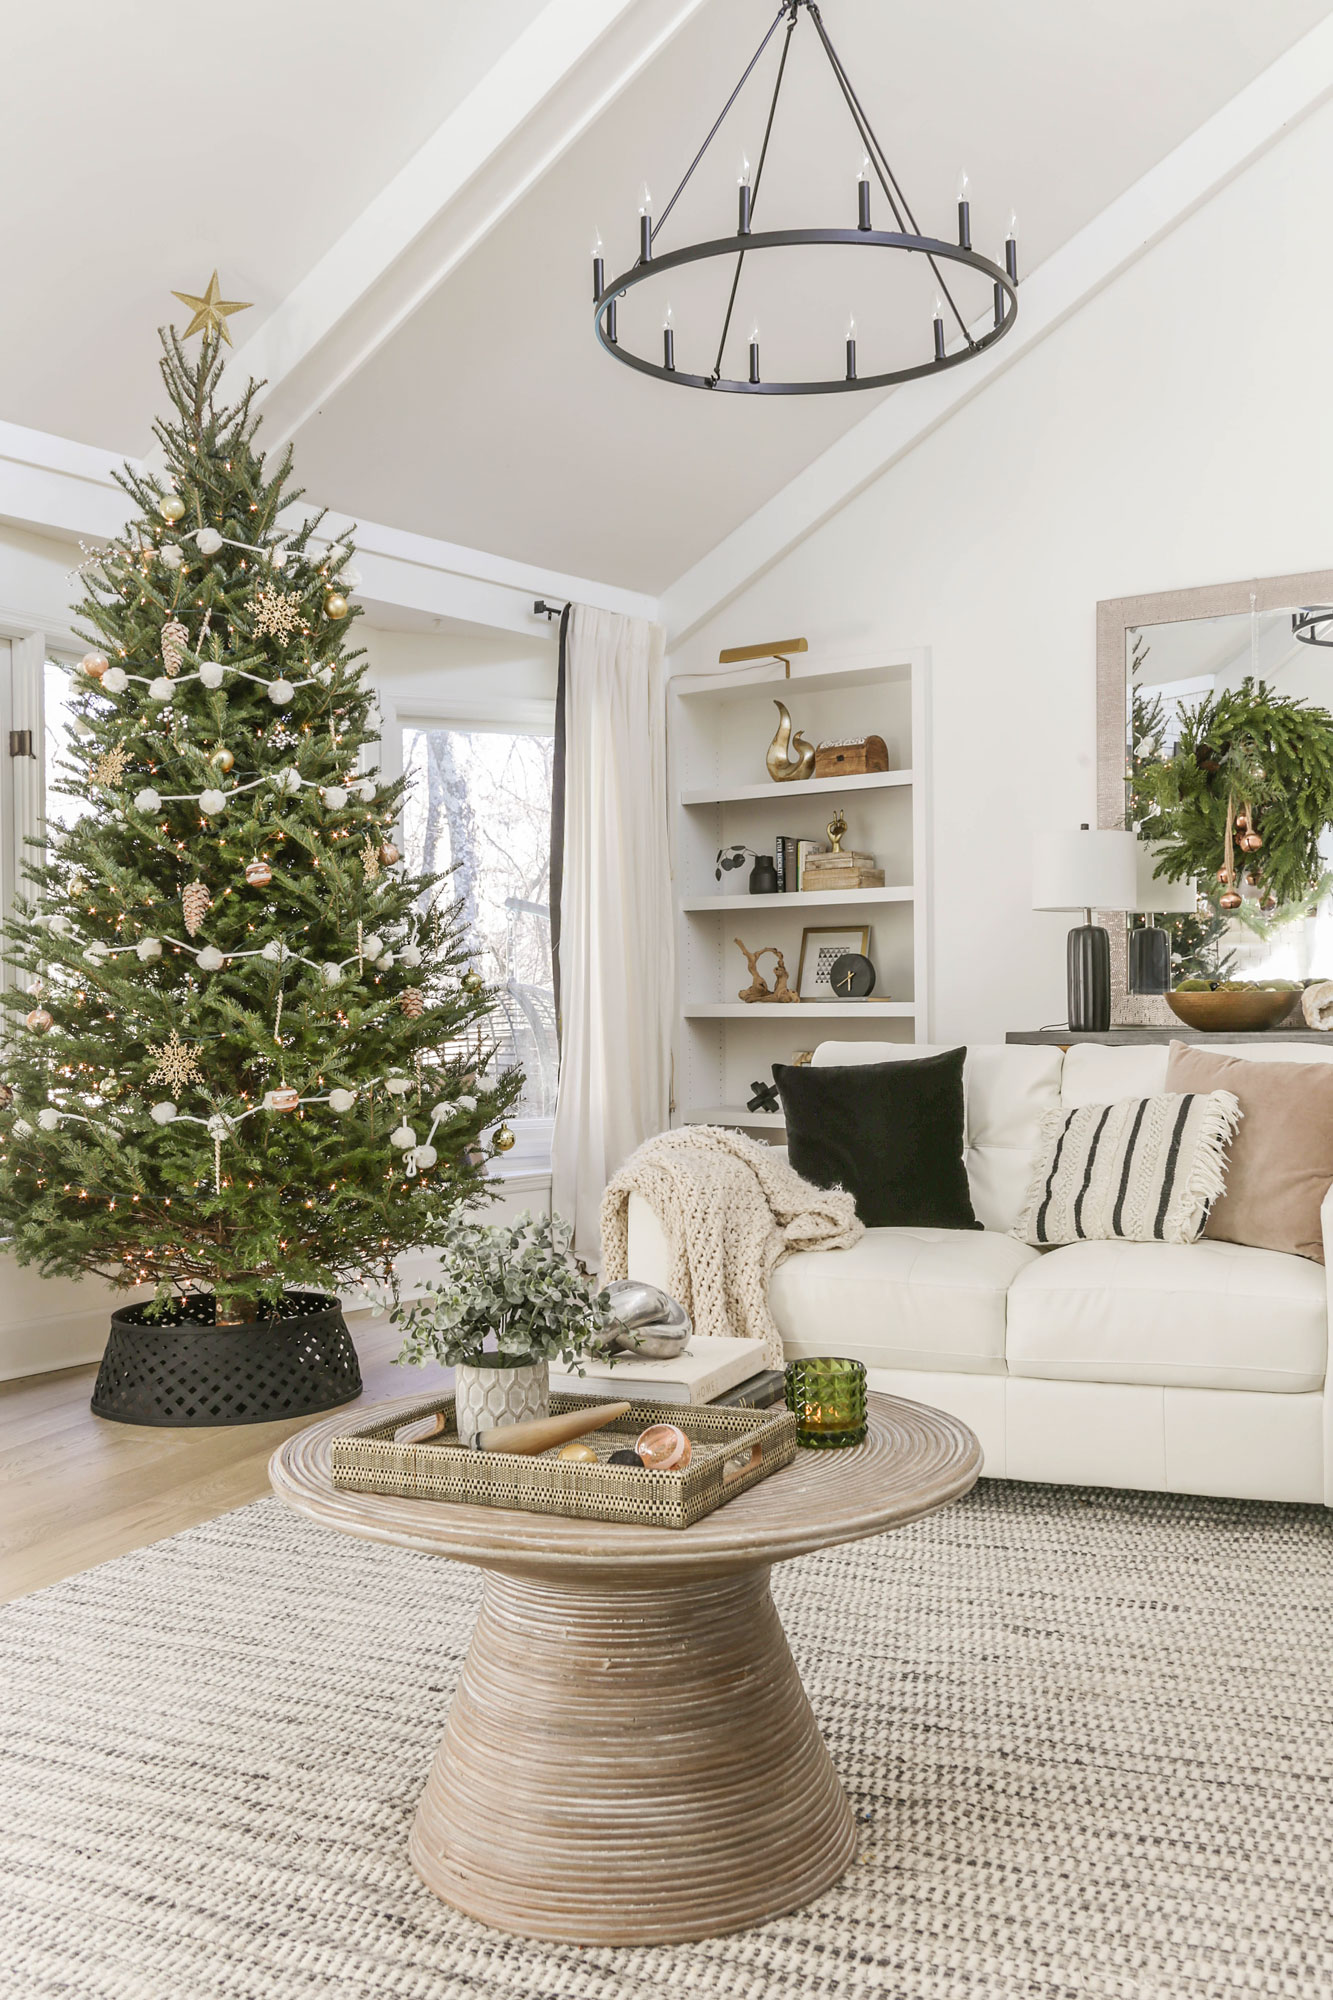 A Simple And Neutral Christmas Home Tour Modern Holiday Glam Decorating